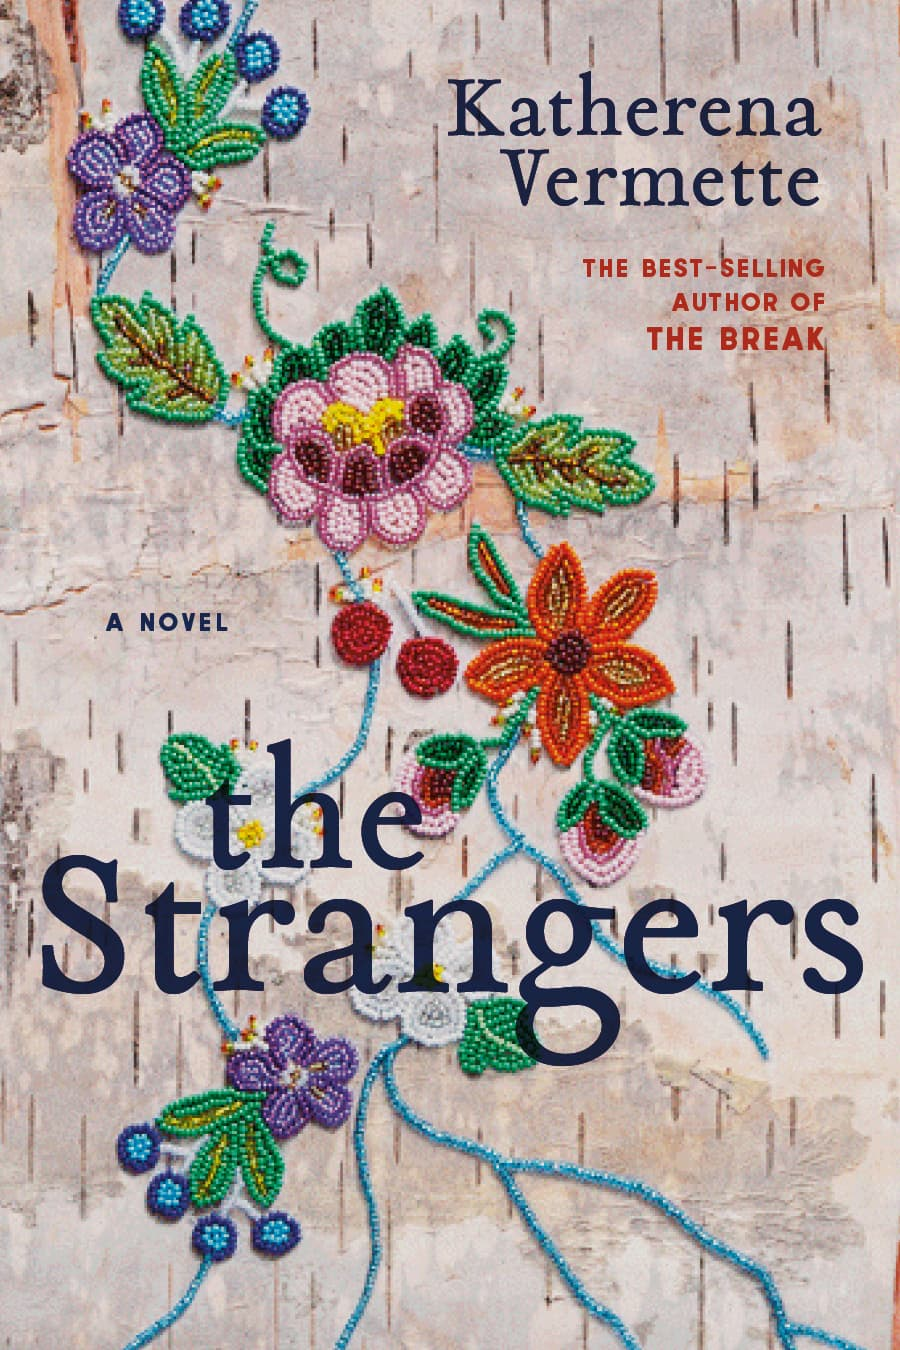 The cover of Katherena Vermette's book the Strangers